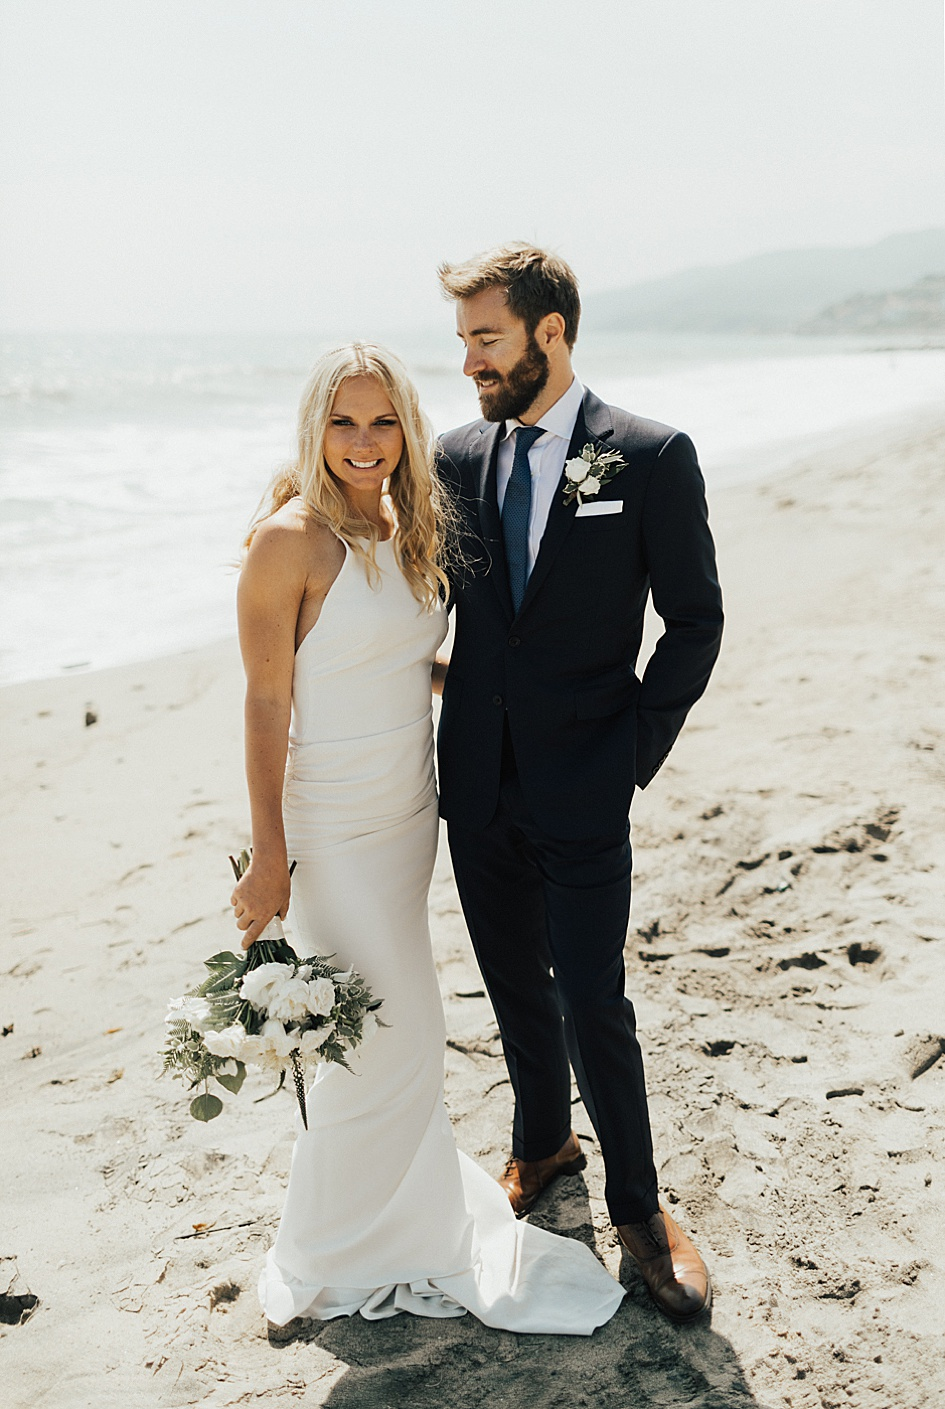 california wedding day, california wedding, wedding inspo, wedding reception, santa monica weddingcalifornia wedding day, california wedding, wedding inspo, wedding reception, santa monica wedding